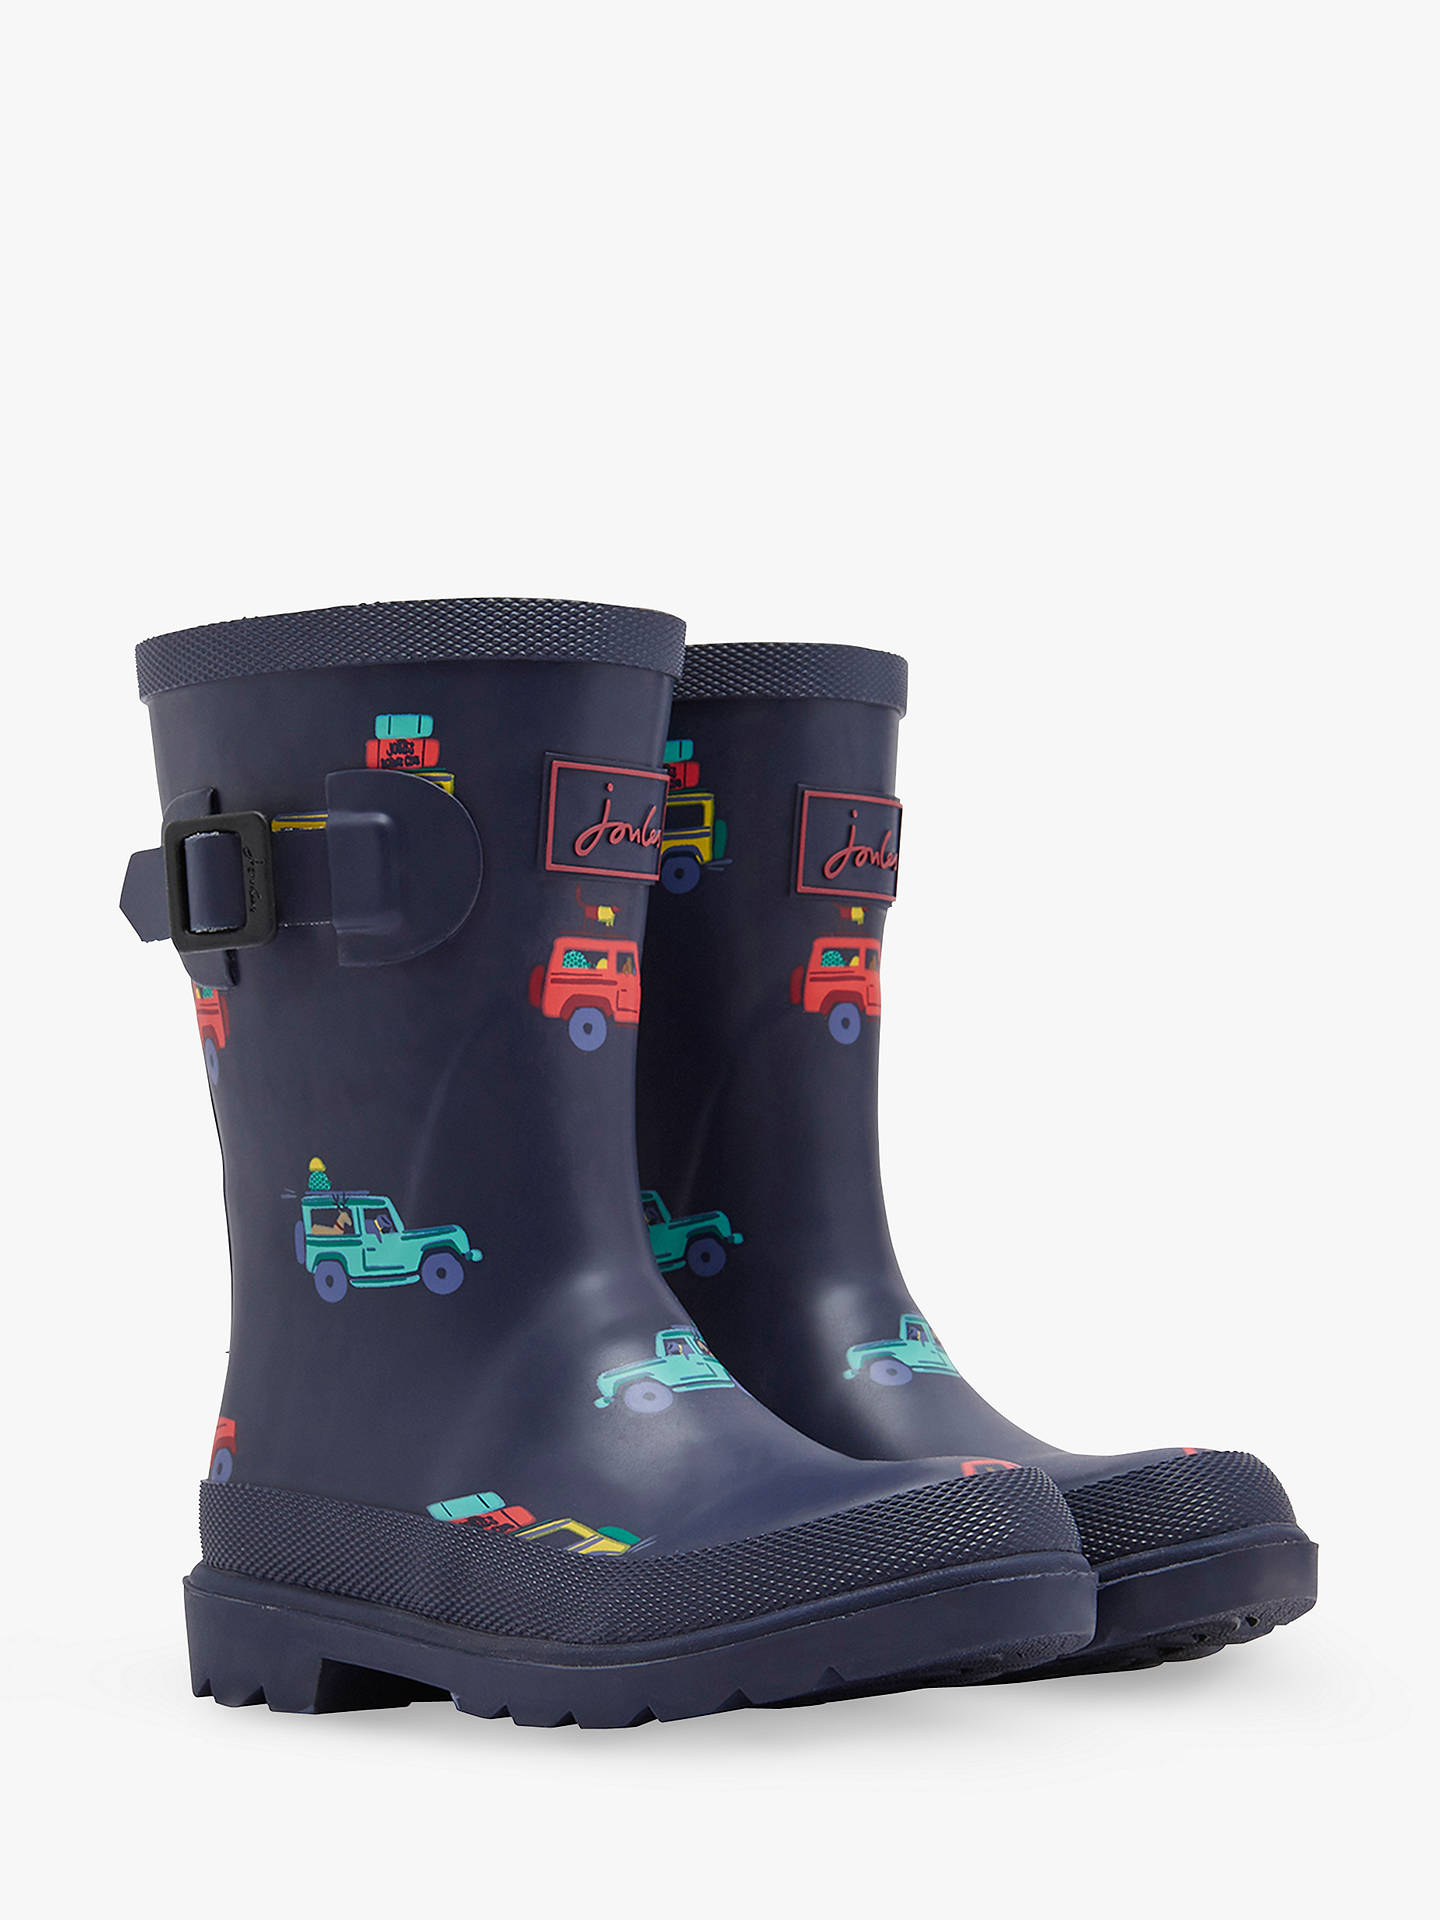 Buy Baby Joule Scout Wellington Boots, Navy, 12 Jnr Online at johnlewis.com